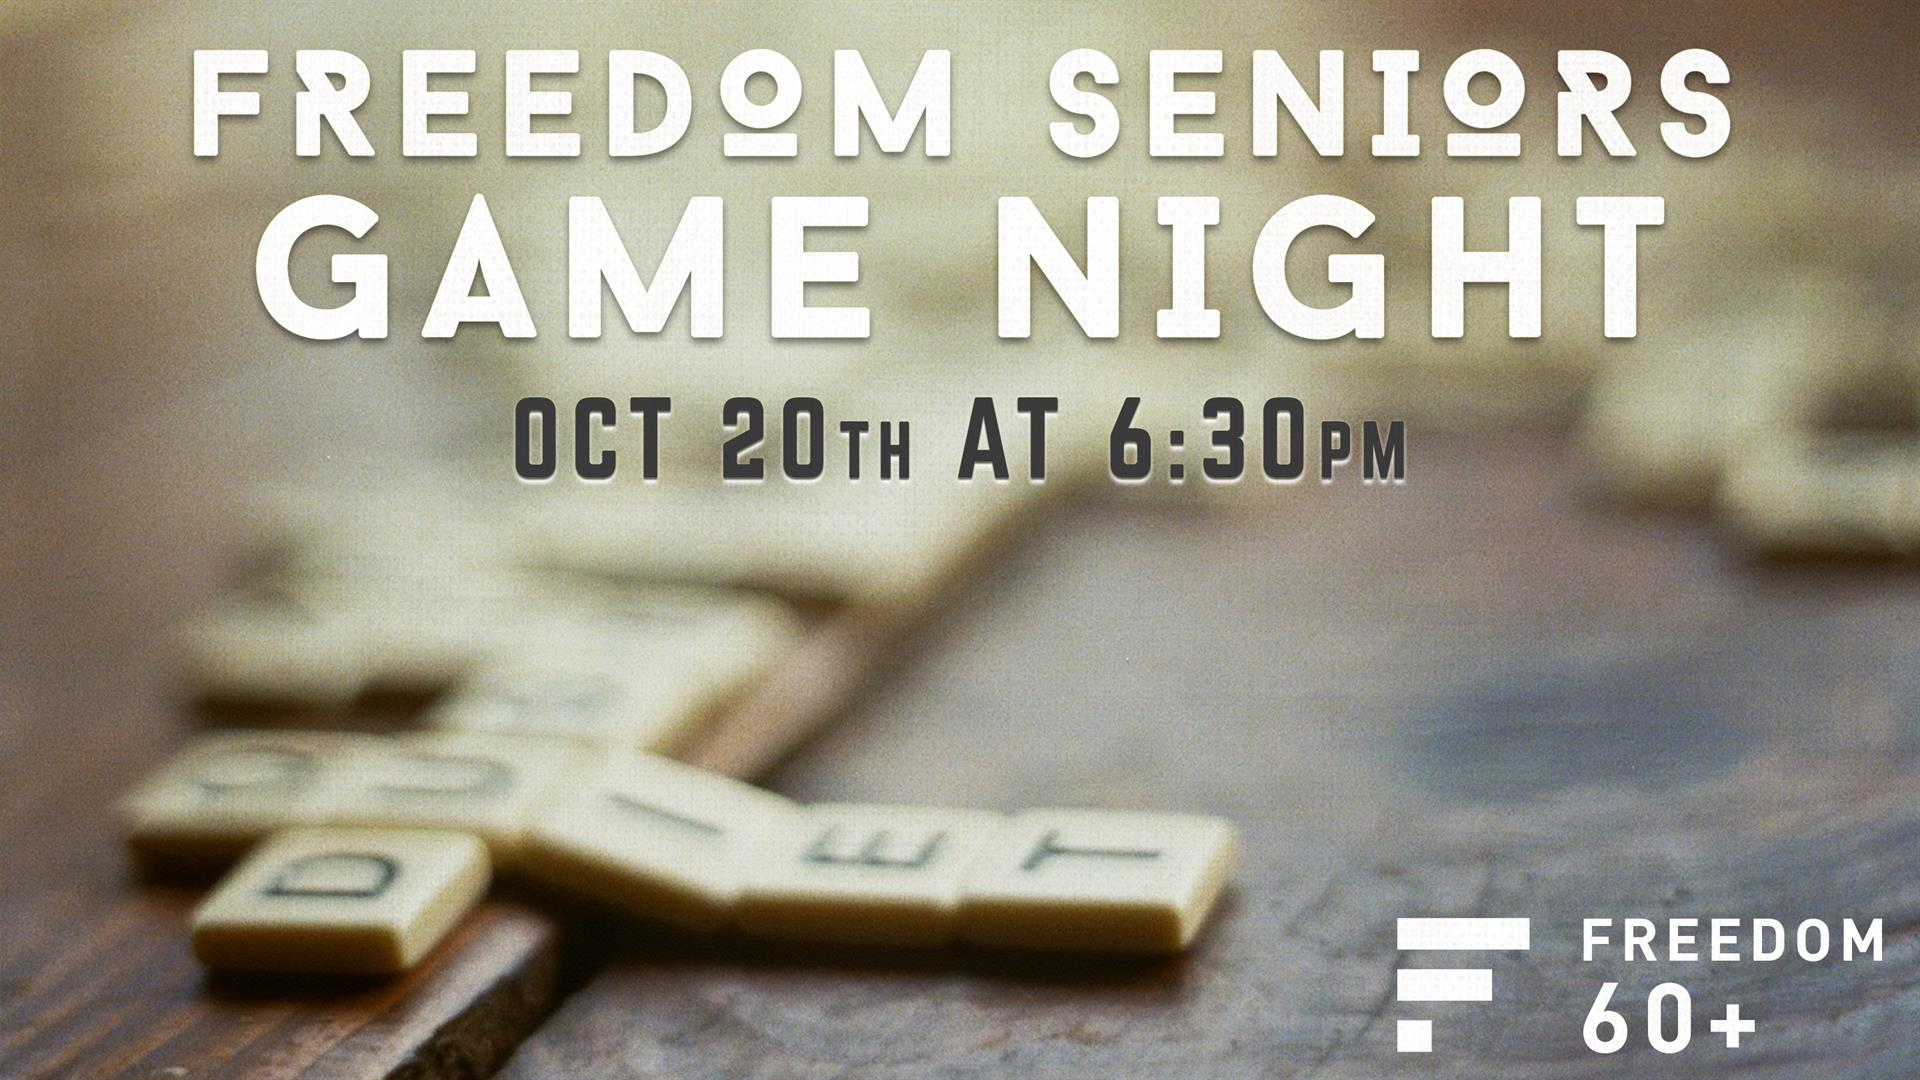 Come hang out with the Freedom Seniors, our 60+ ministry, for a great night of fun, food, fellowship and games. We are having a Fall theme for the night... Soups, Frito Chili Pies and Pumpkin stuff! We'll be meeting in the Student Center's Freedom Cafe from 6:30-9:30 p.m. See you there!